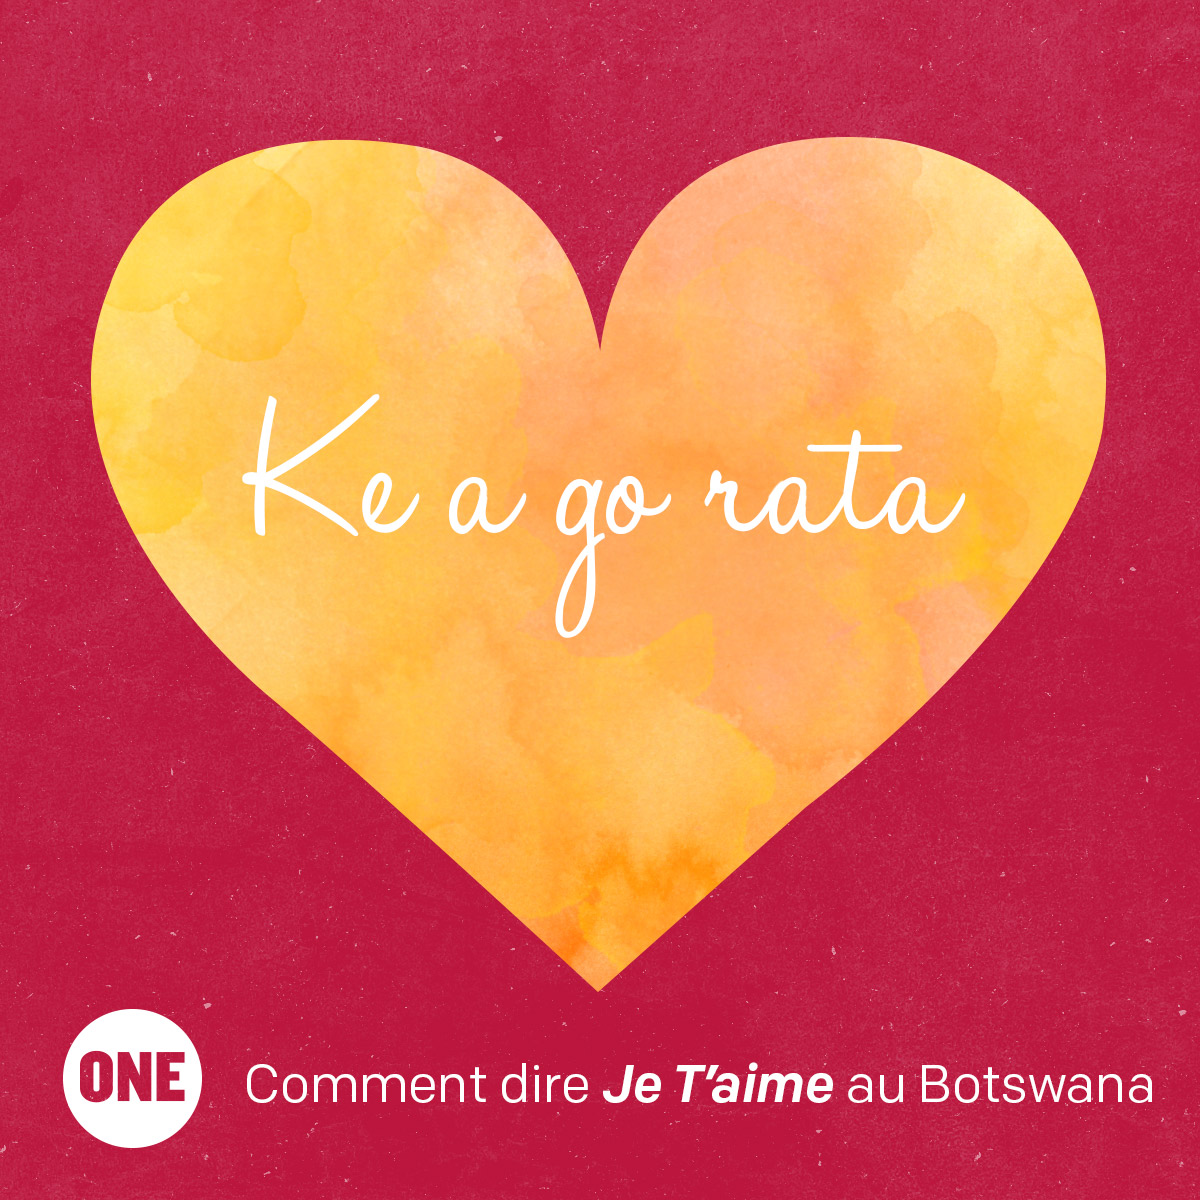 22US2014(valentine-card-share-graphic)_botswana_FRENCH